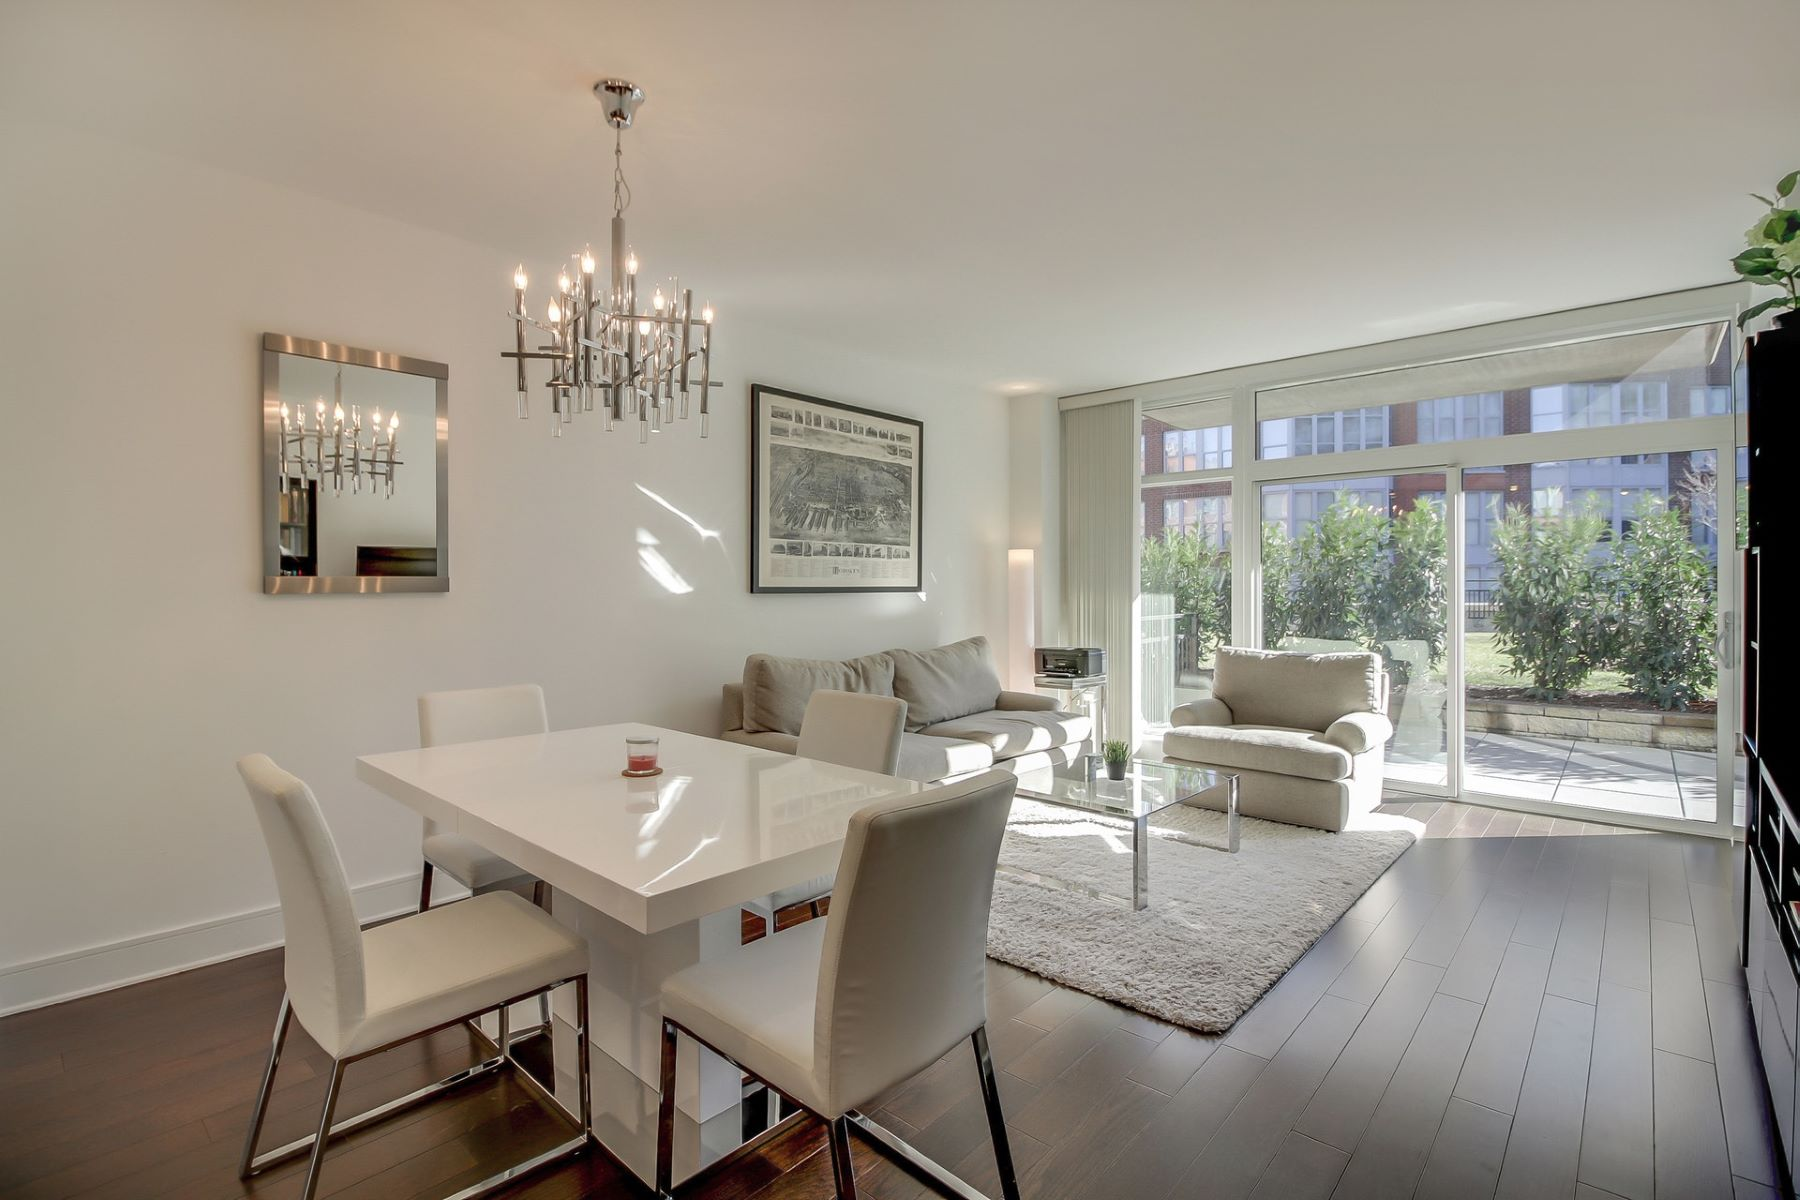 condominiums pour l Vente à Stunning 1 Bed / 1 Bath located in the luxurious Maxwell Place 1100 Maxwell Lane #418, Hoboken, New Jersey 07030 États-Unis